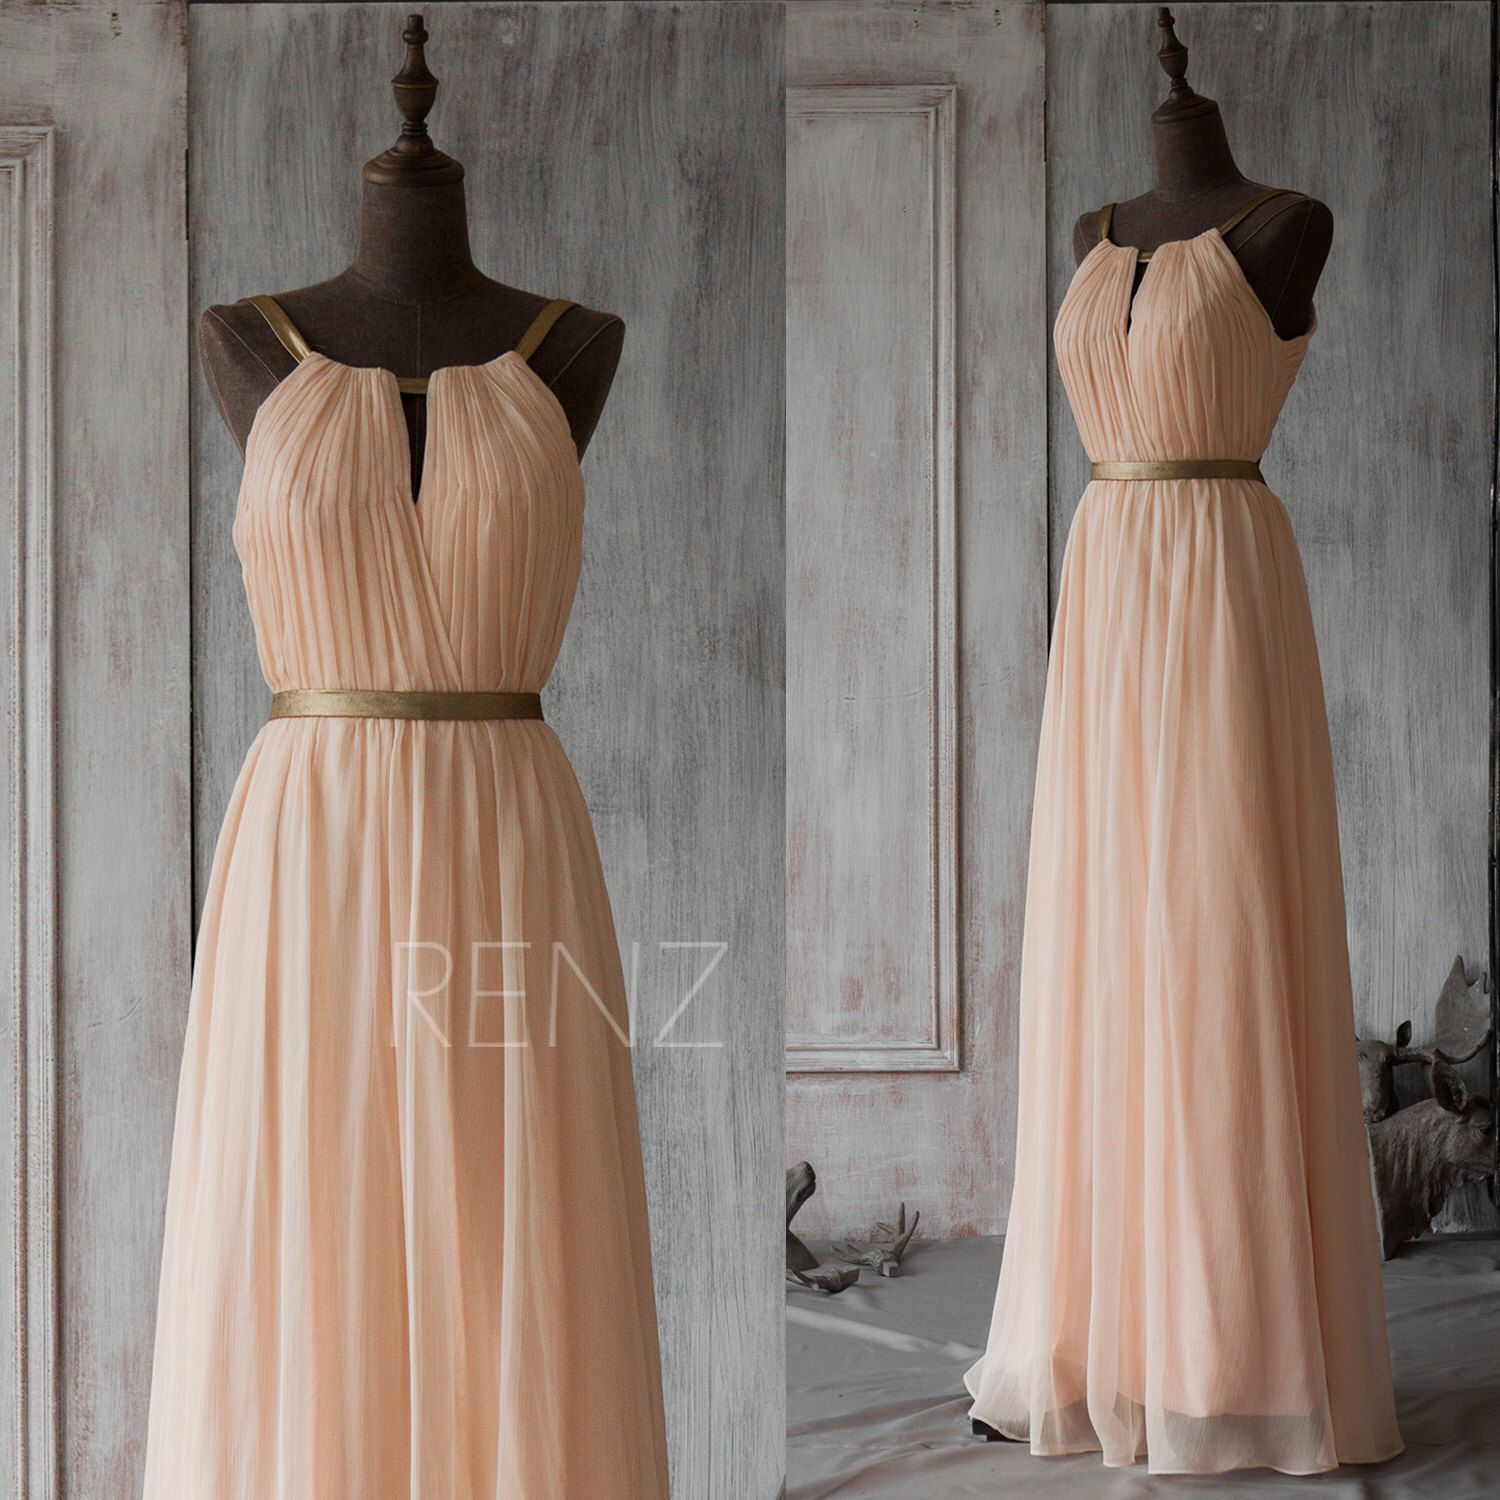 2015 Peach Long Bridesmaid Dress,Blush Prom Dress,Chiffon Wedding ...